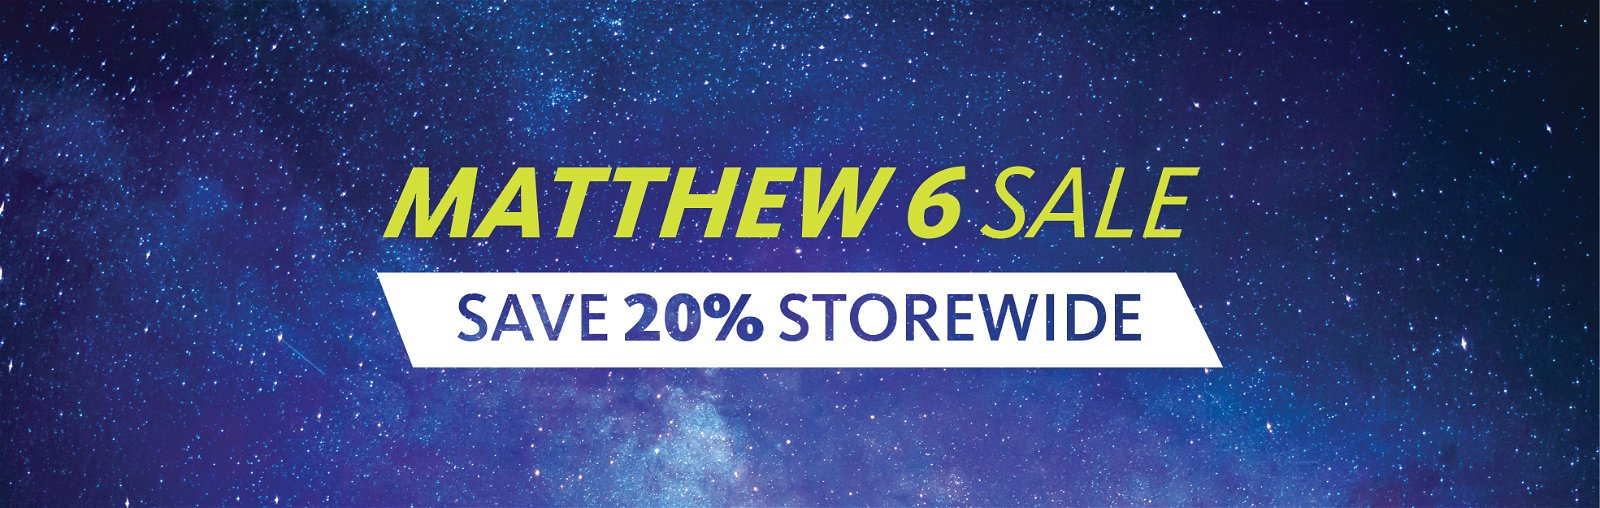 Final Day of MATTHEW 6 SALE!